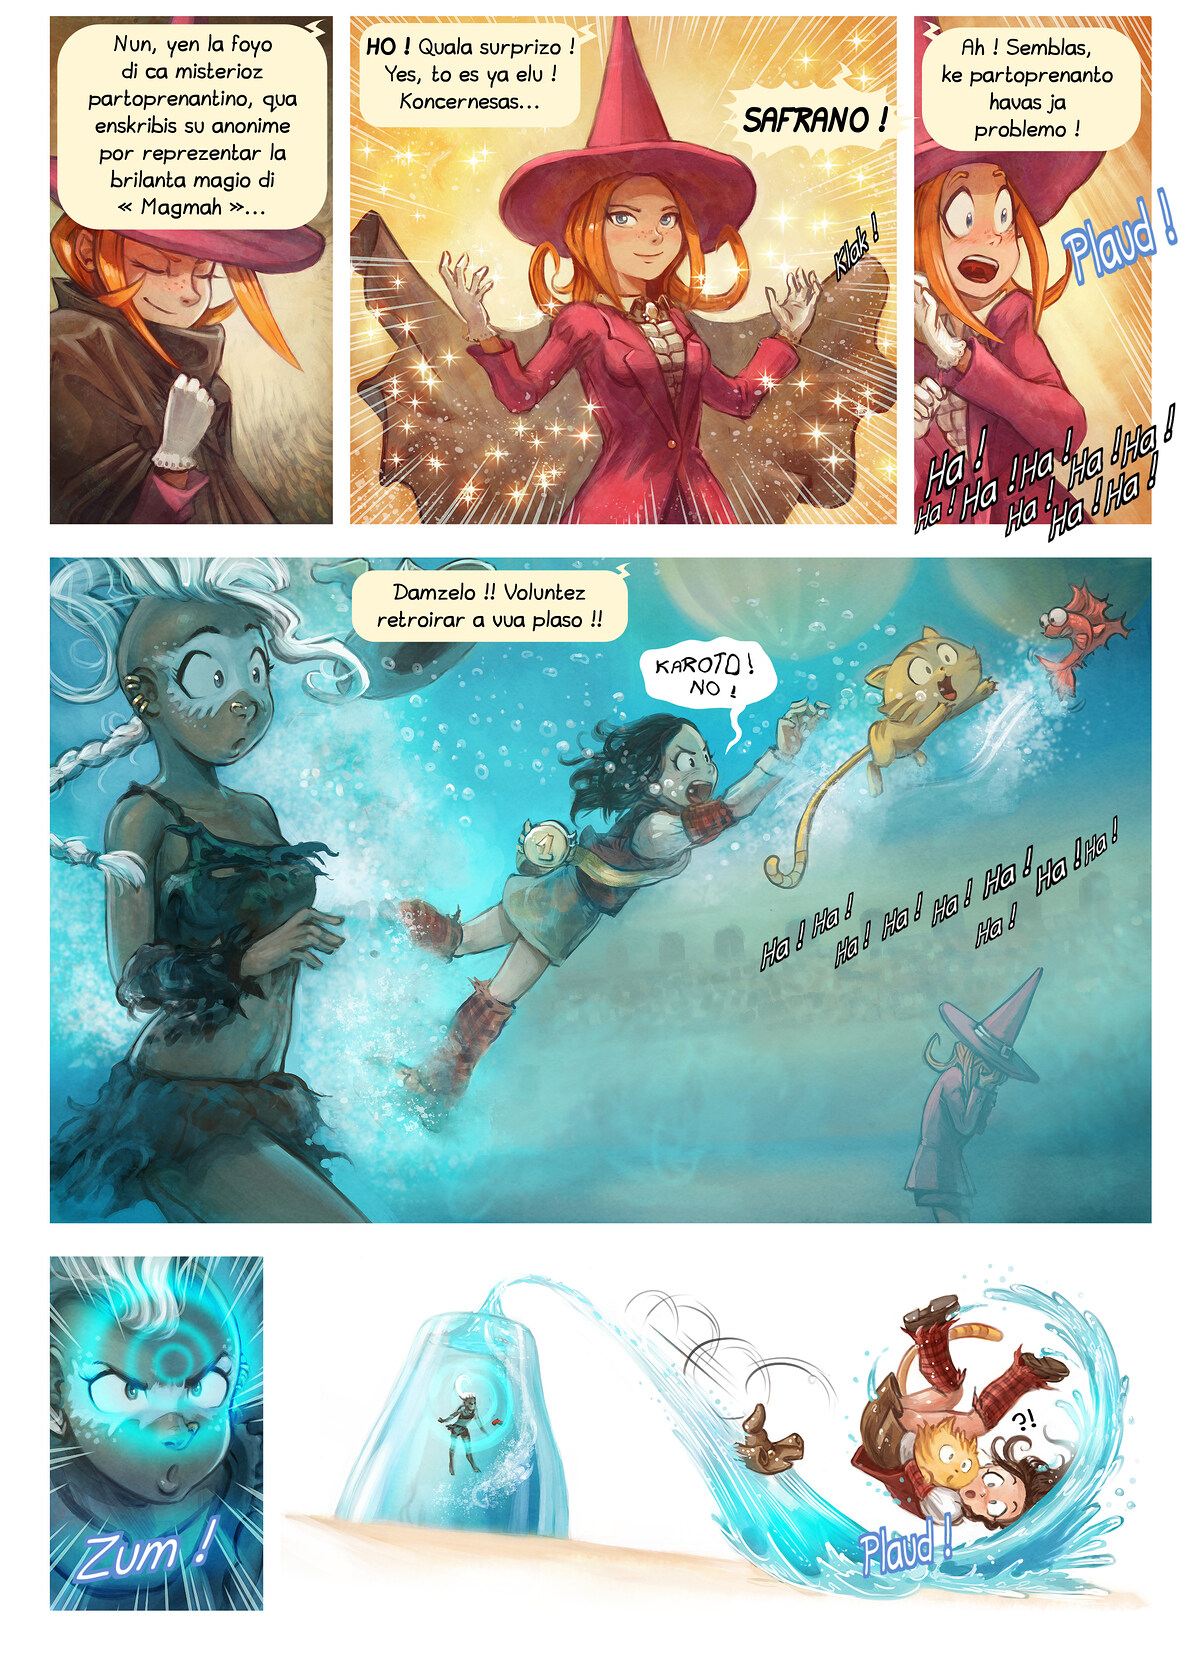 A webcomic page of Pepper&Carrot, episode 21 [io], page 6